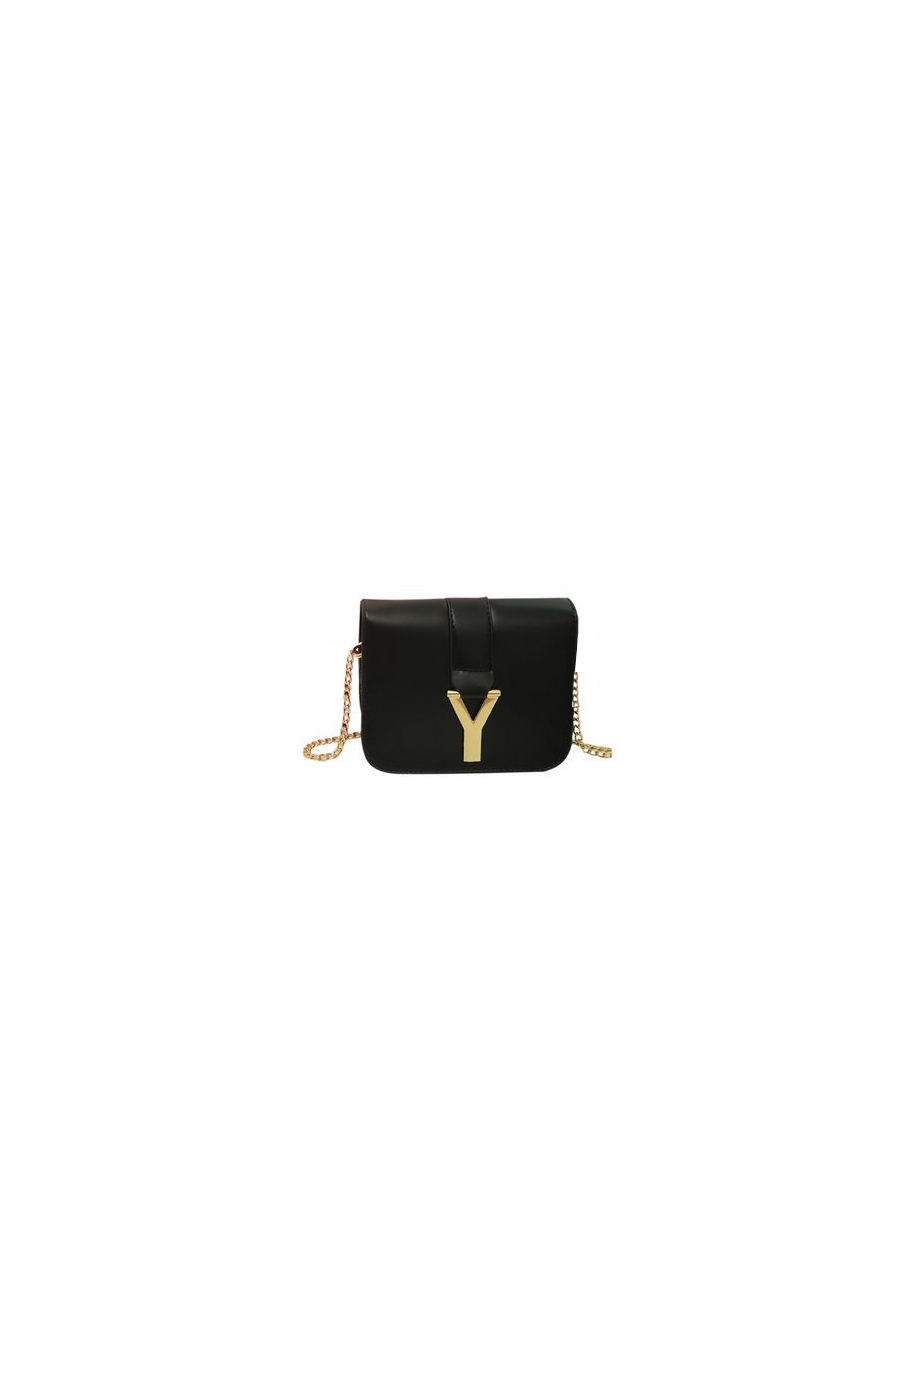 URSULA Y-Letter Shoulder Bag |Black| In Bags | JESSICABUURMAN [5822] - $55.00 : JESSICABUURMAN.COM